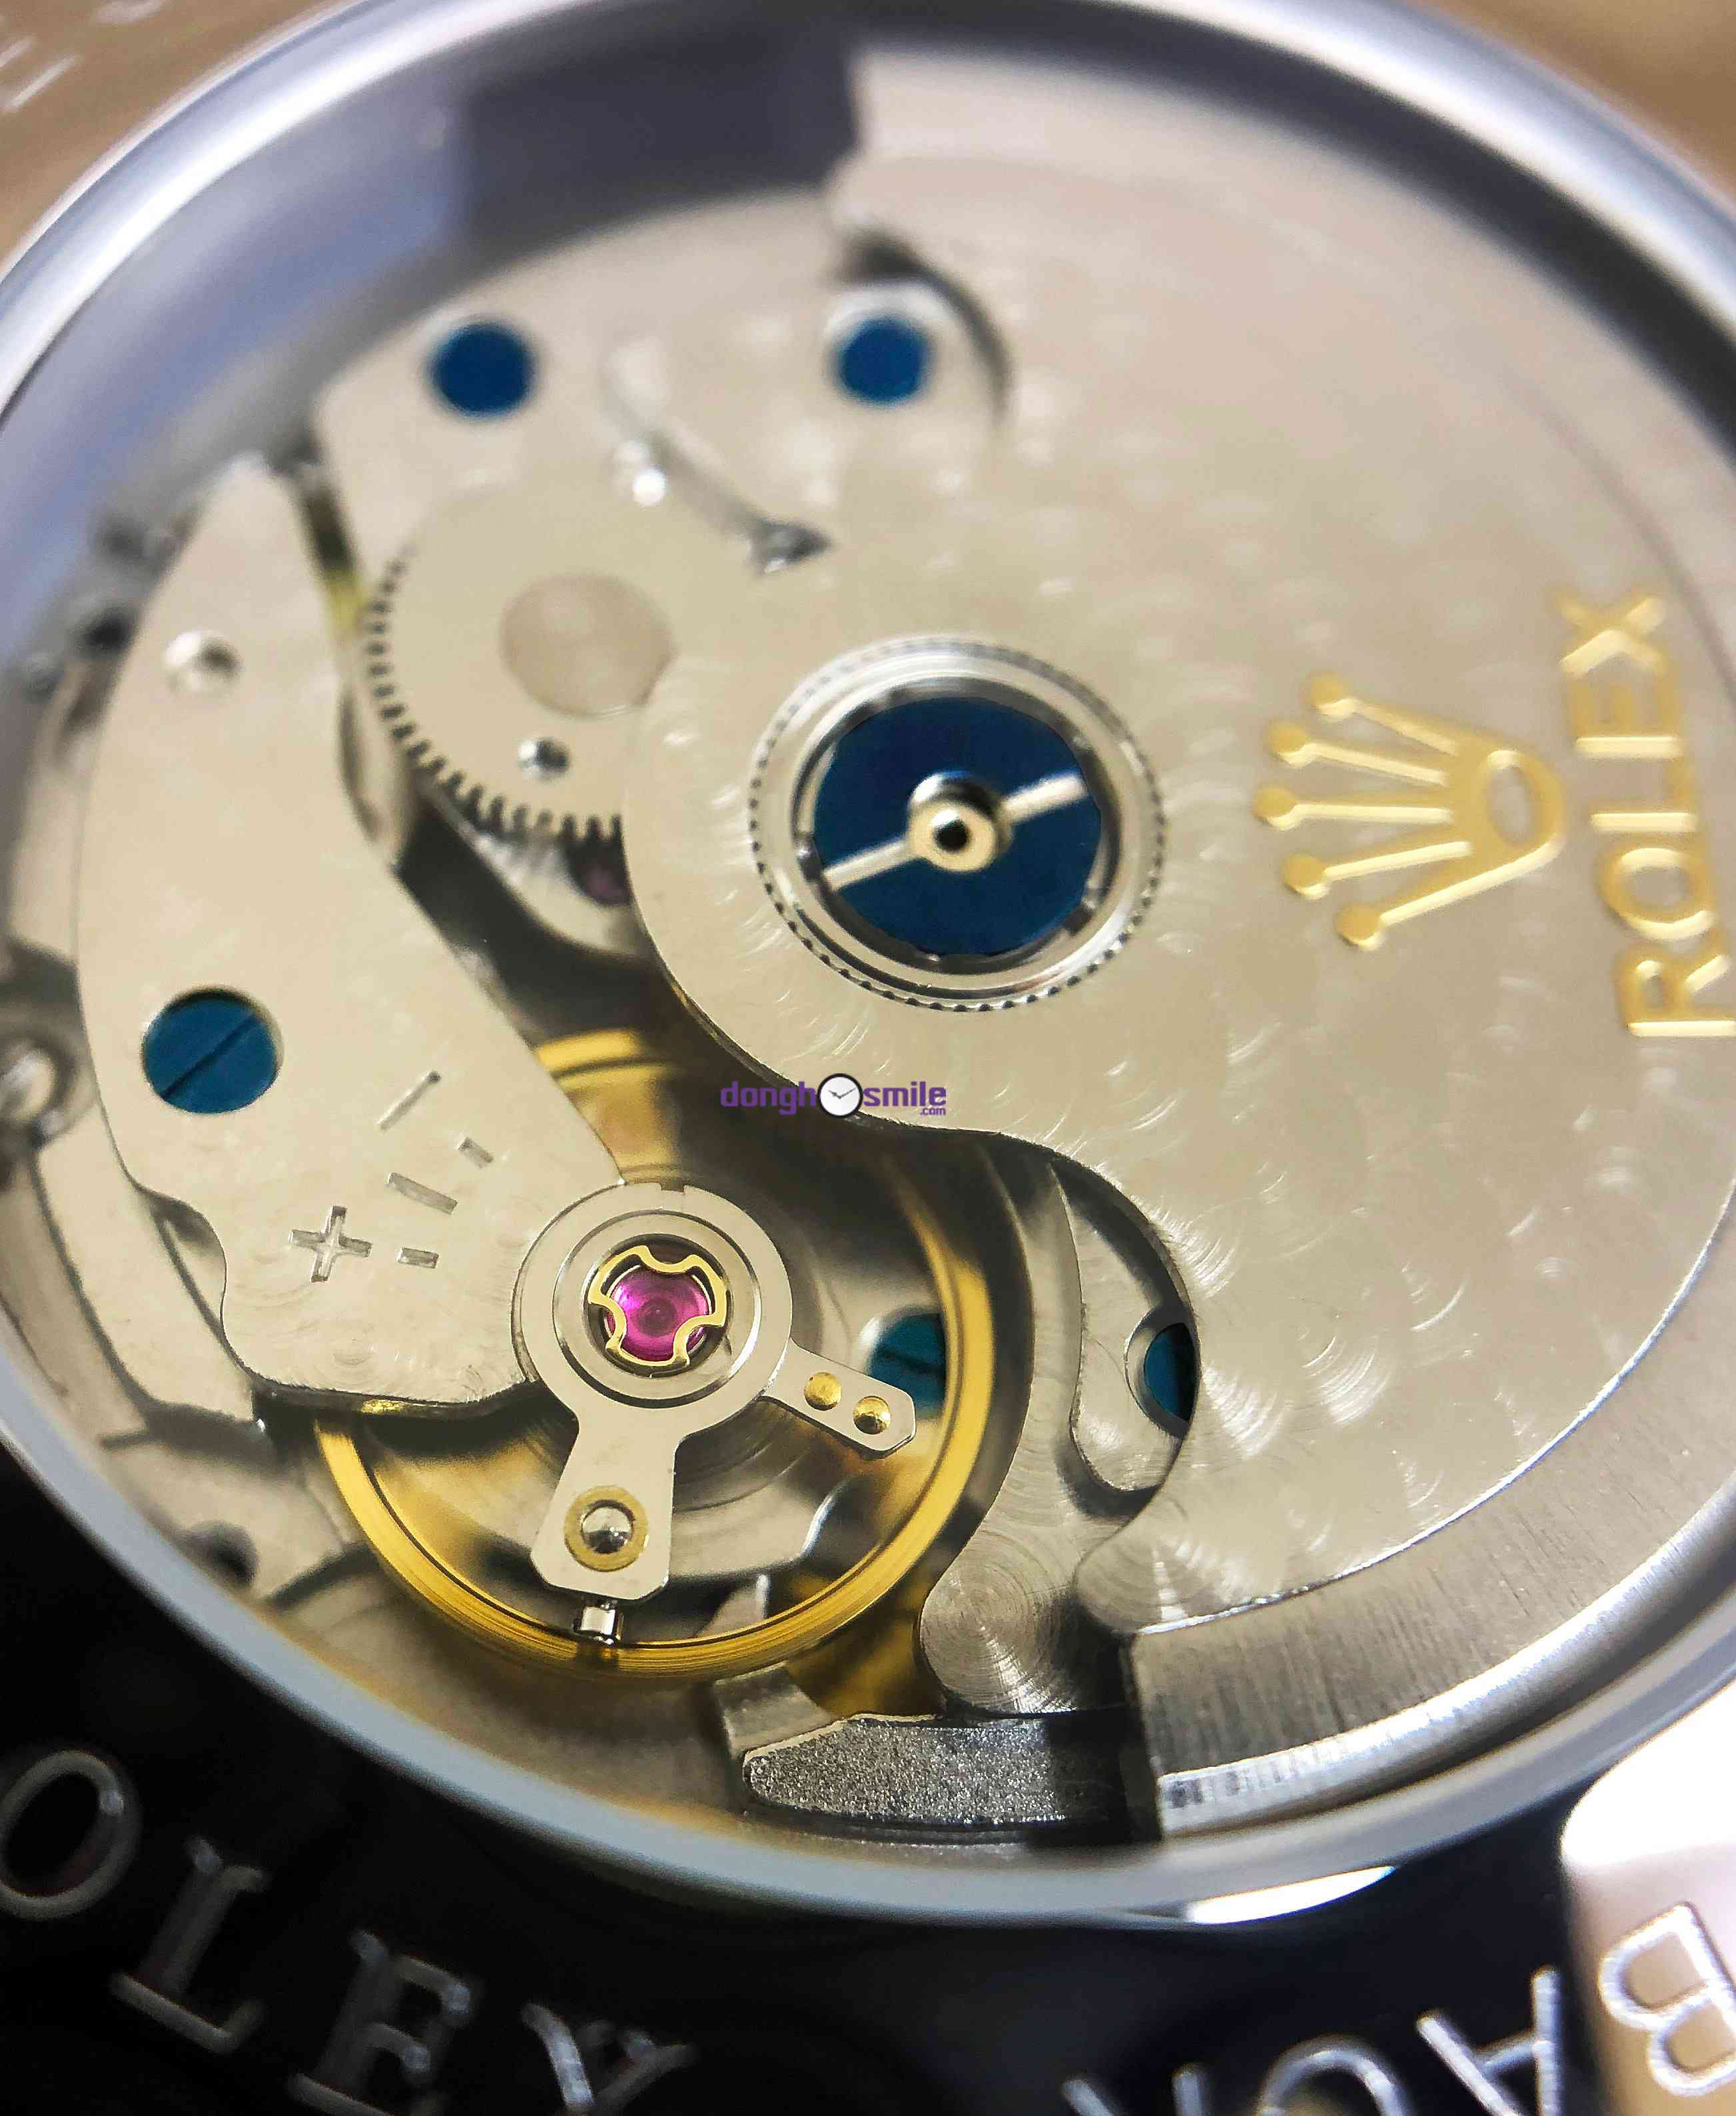 dong-ho-rolex-cellini-nam-automatic-a-rl04-07